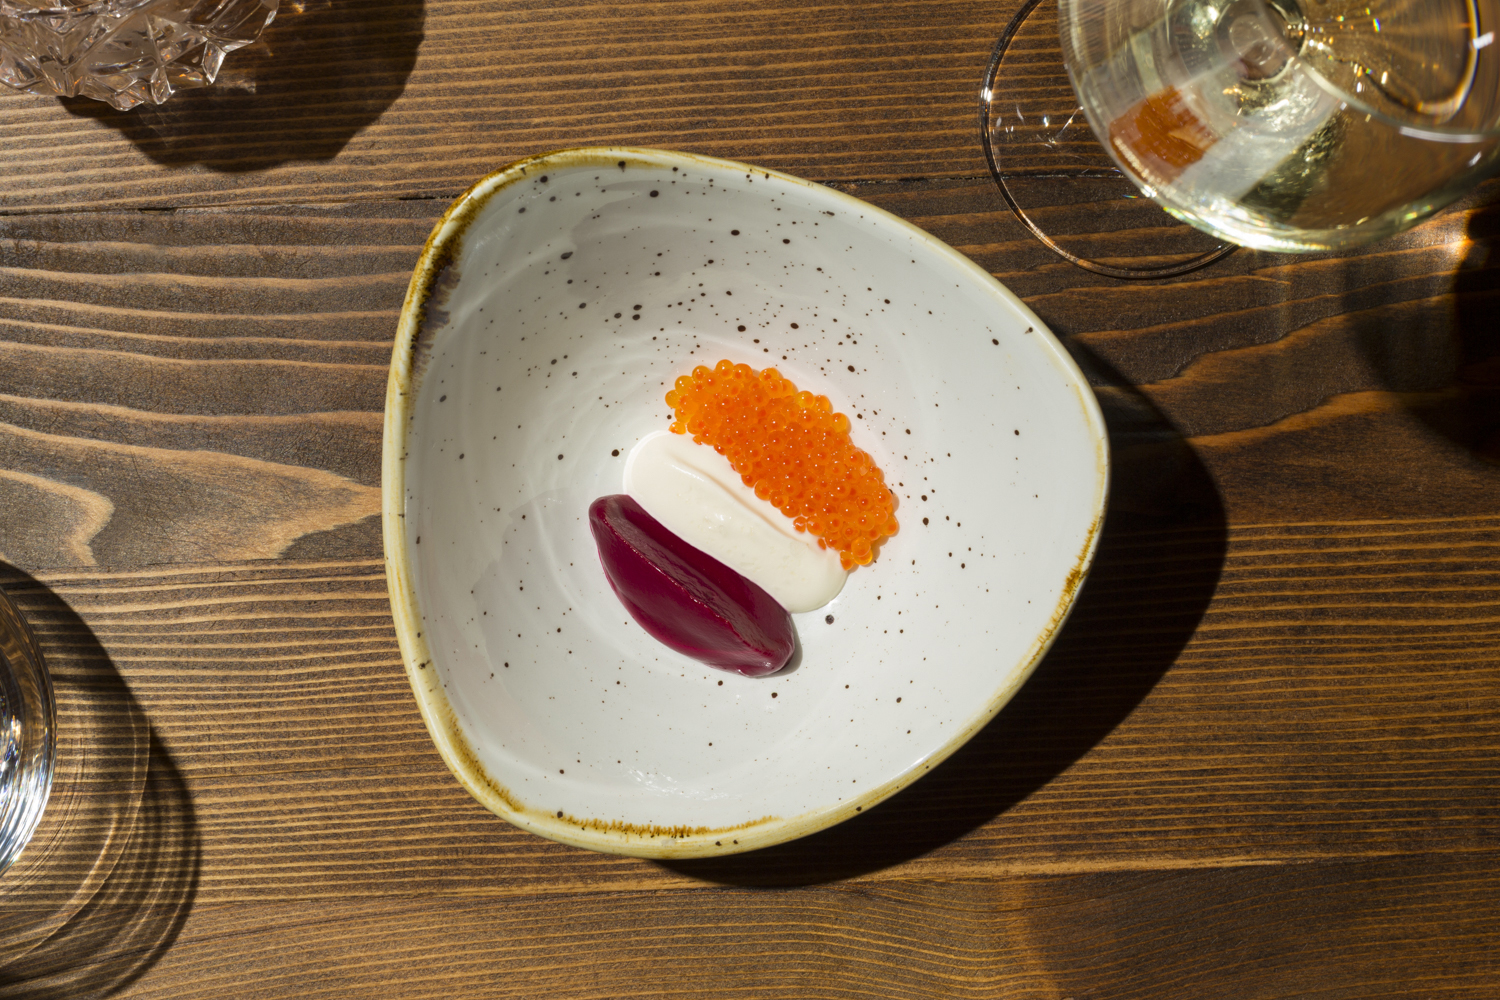 Borscht with beets, trout Roe and raw cream. (Photo: Melissa Goodwin for Observer)